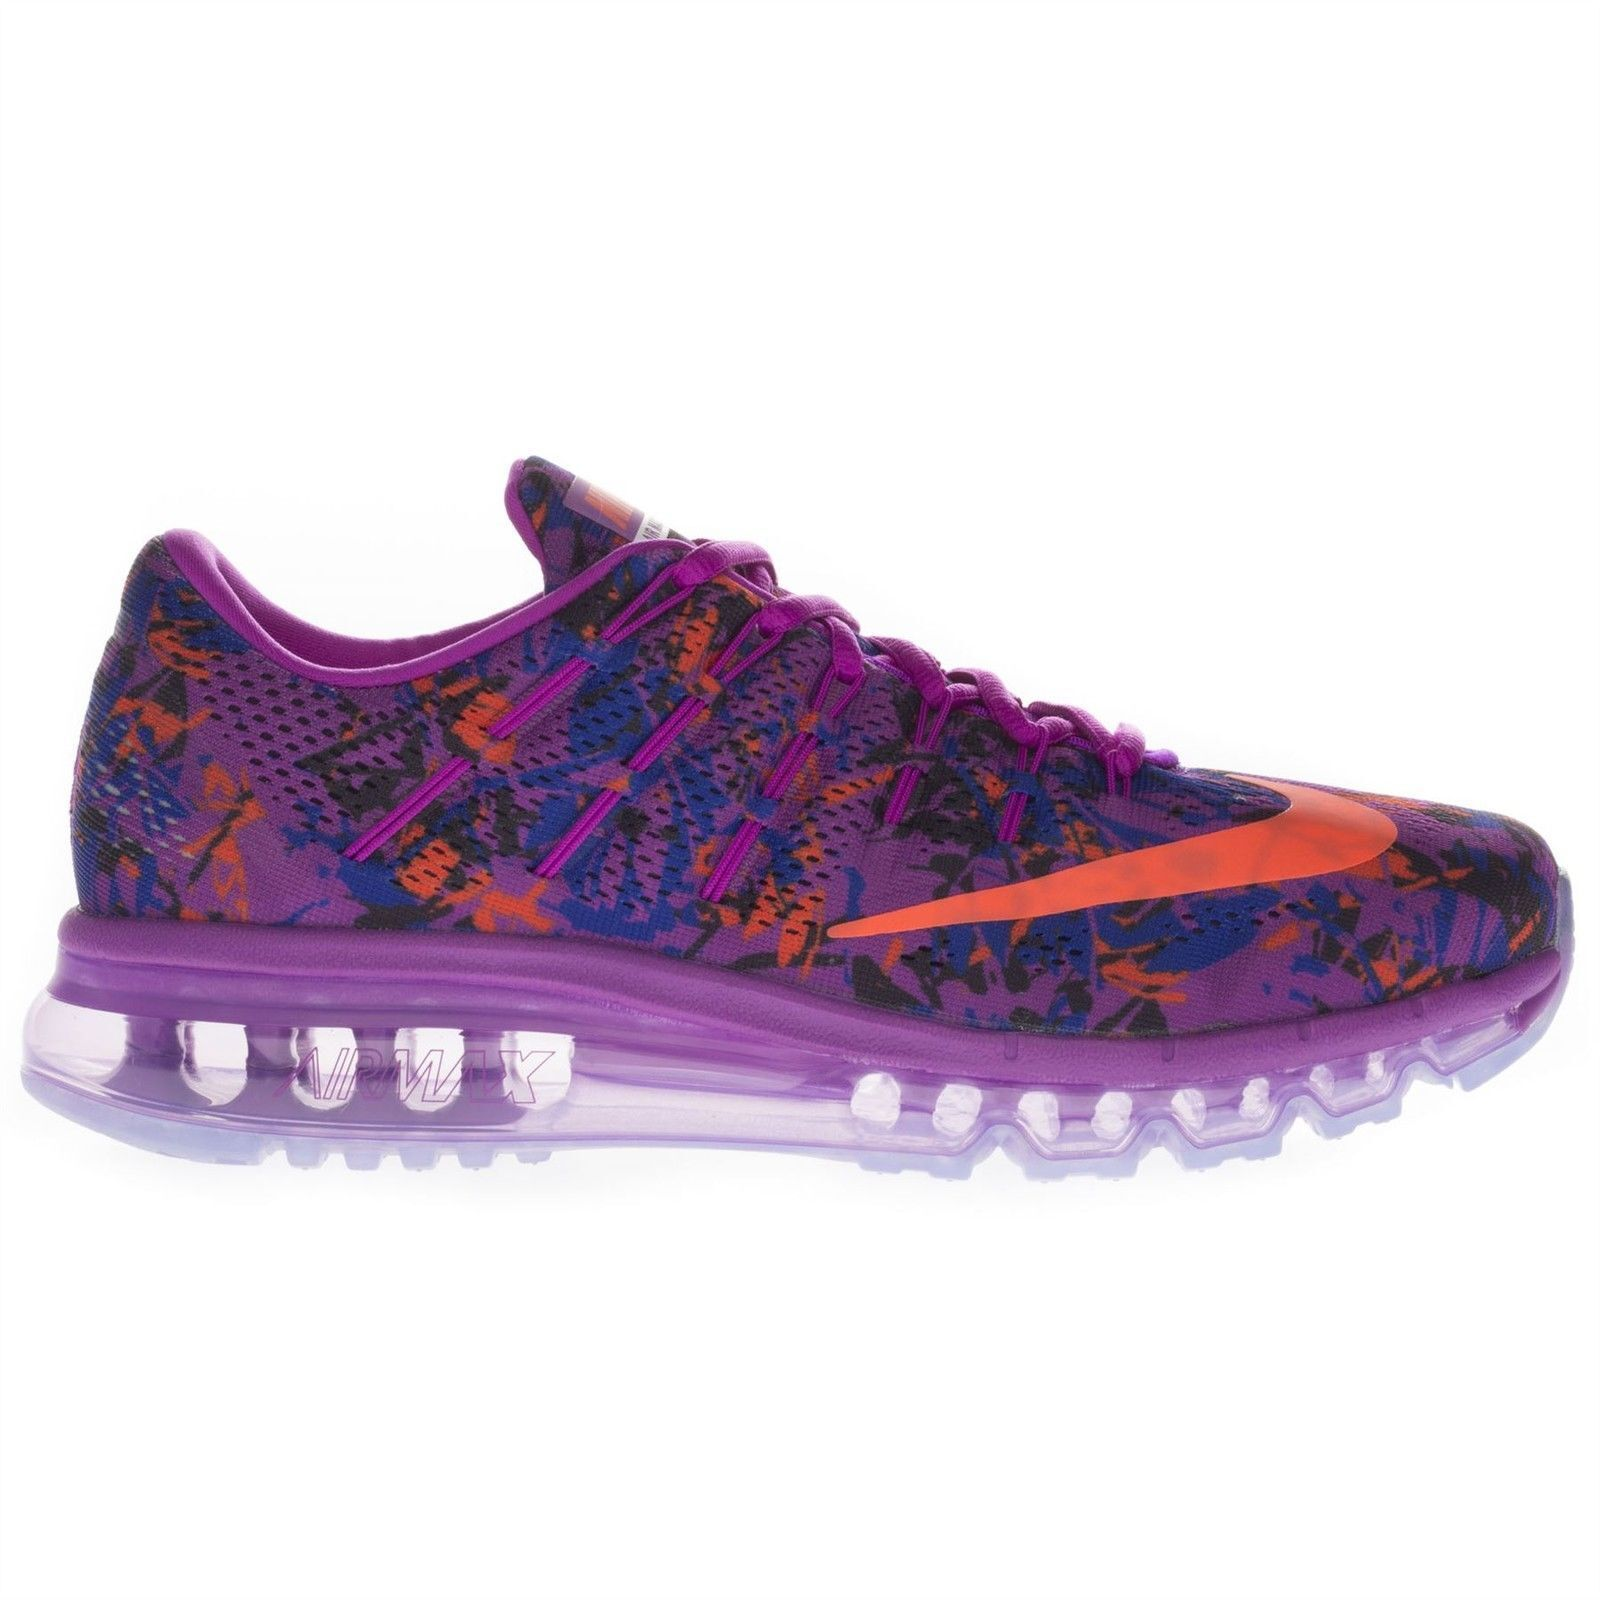 d96b3f22aeb7e Details about Nike Women's Air Max 2016 Print Low Top Running Sports Casual  Purple Trainers